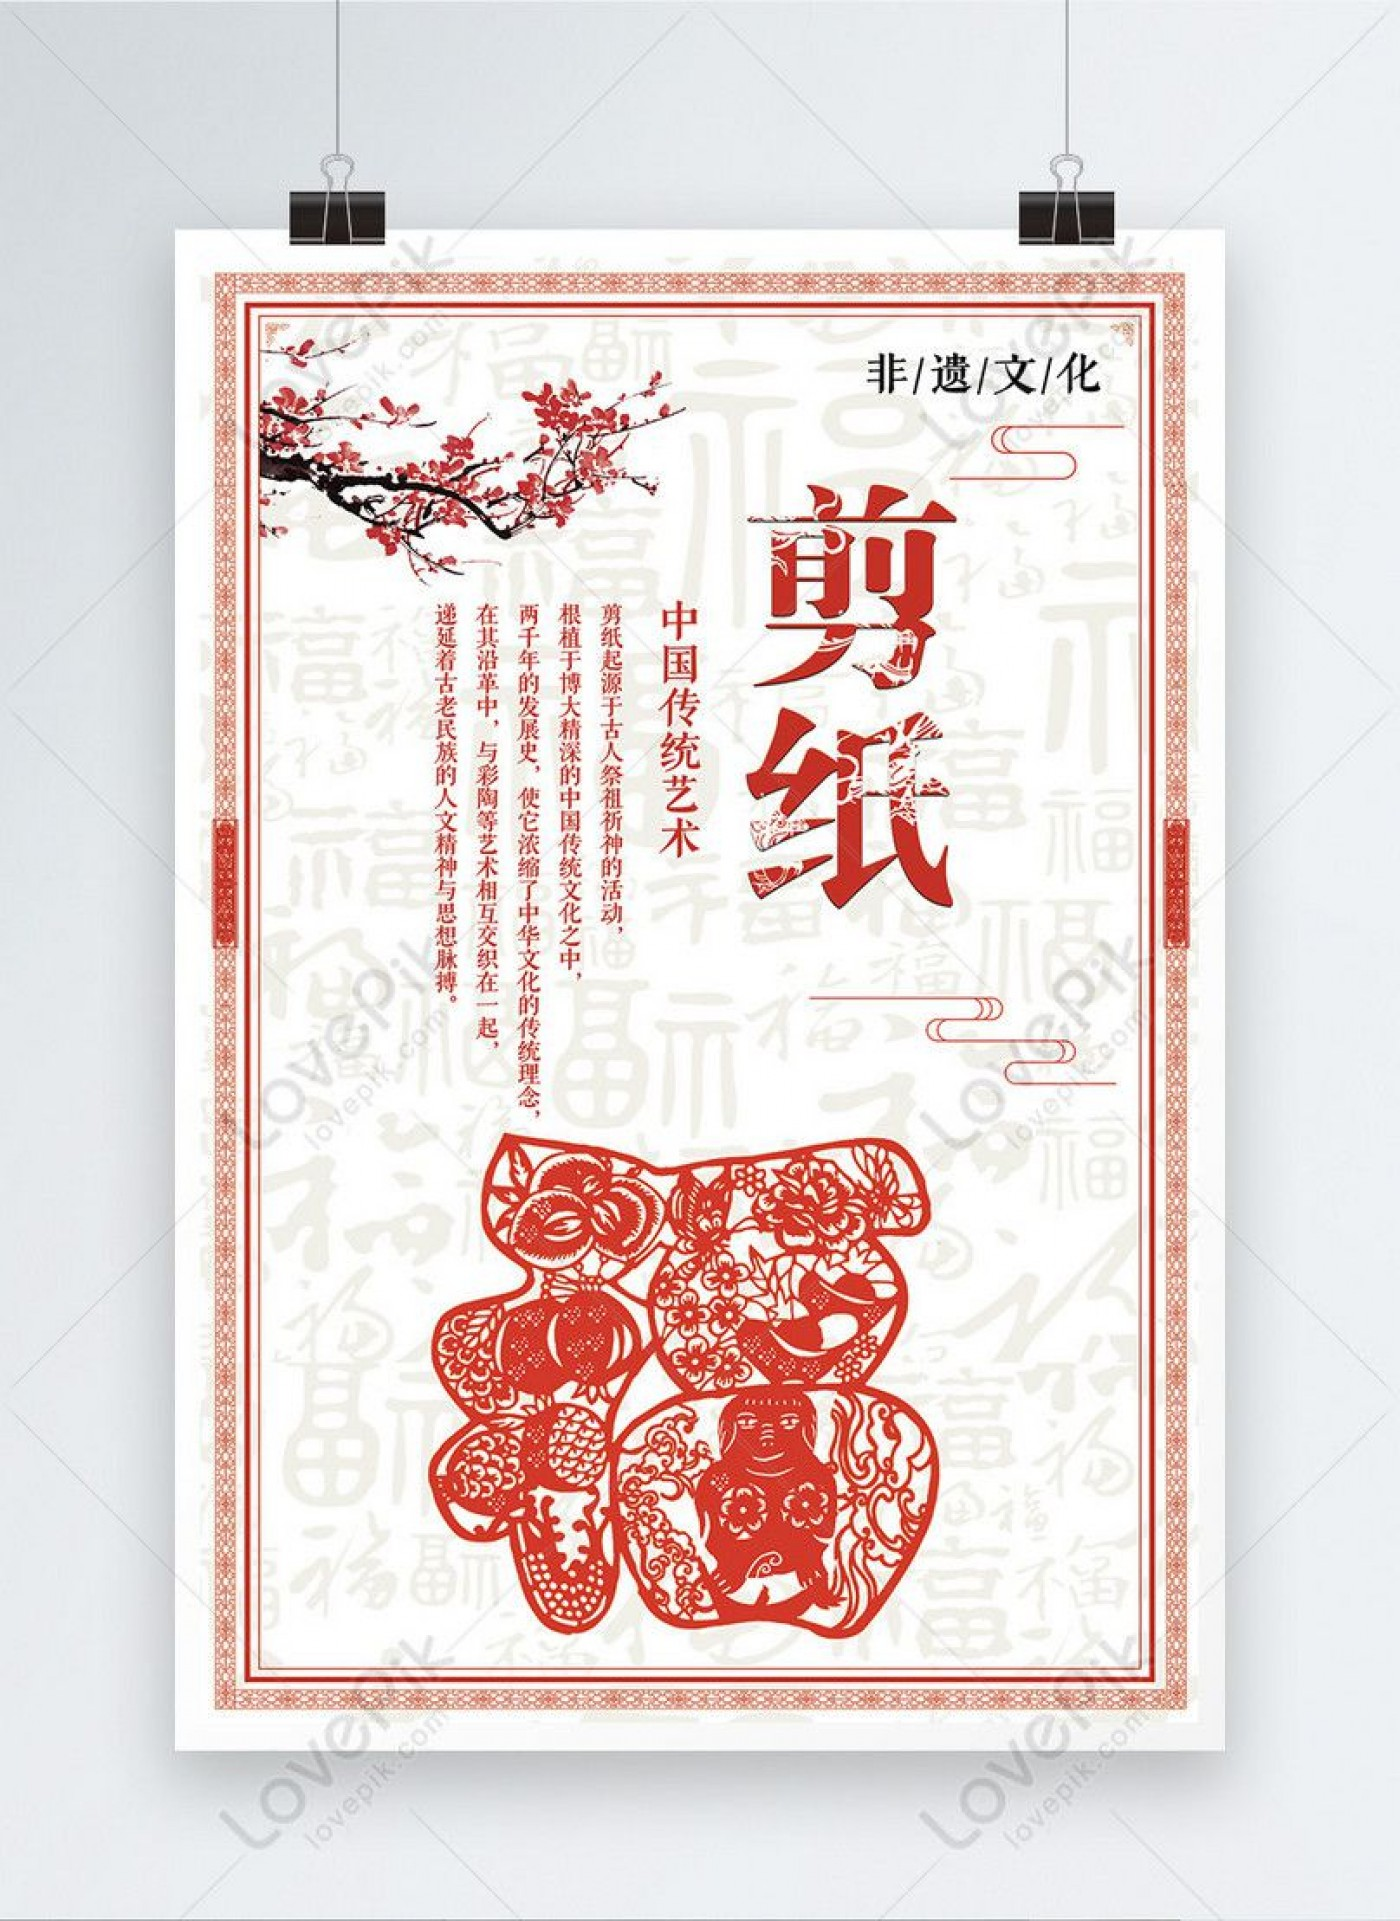 003 Fantastic Chinese Paper Cut Template Concept 1400